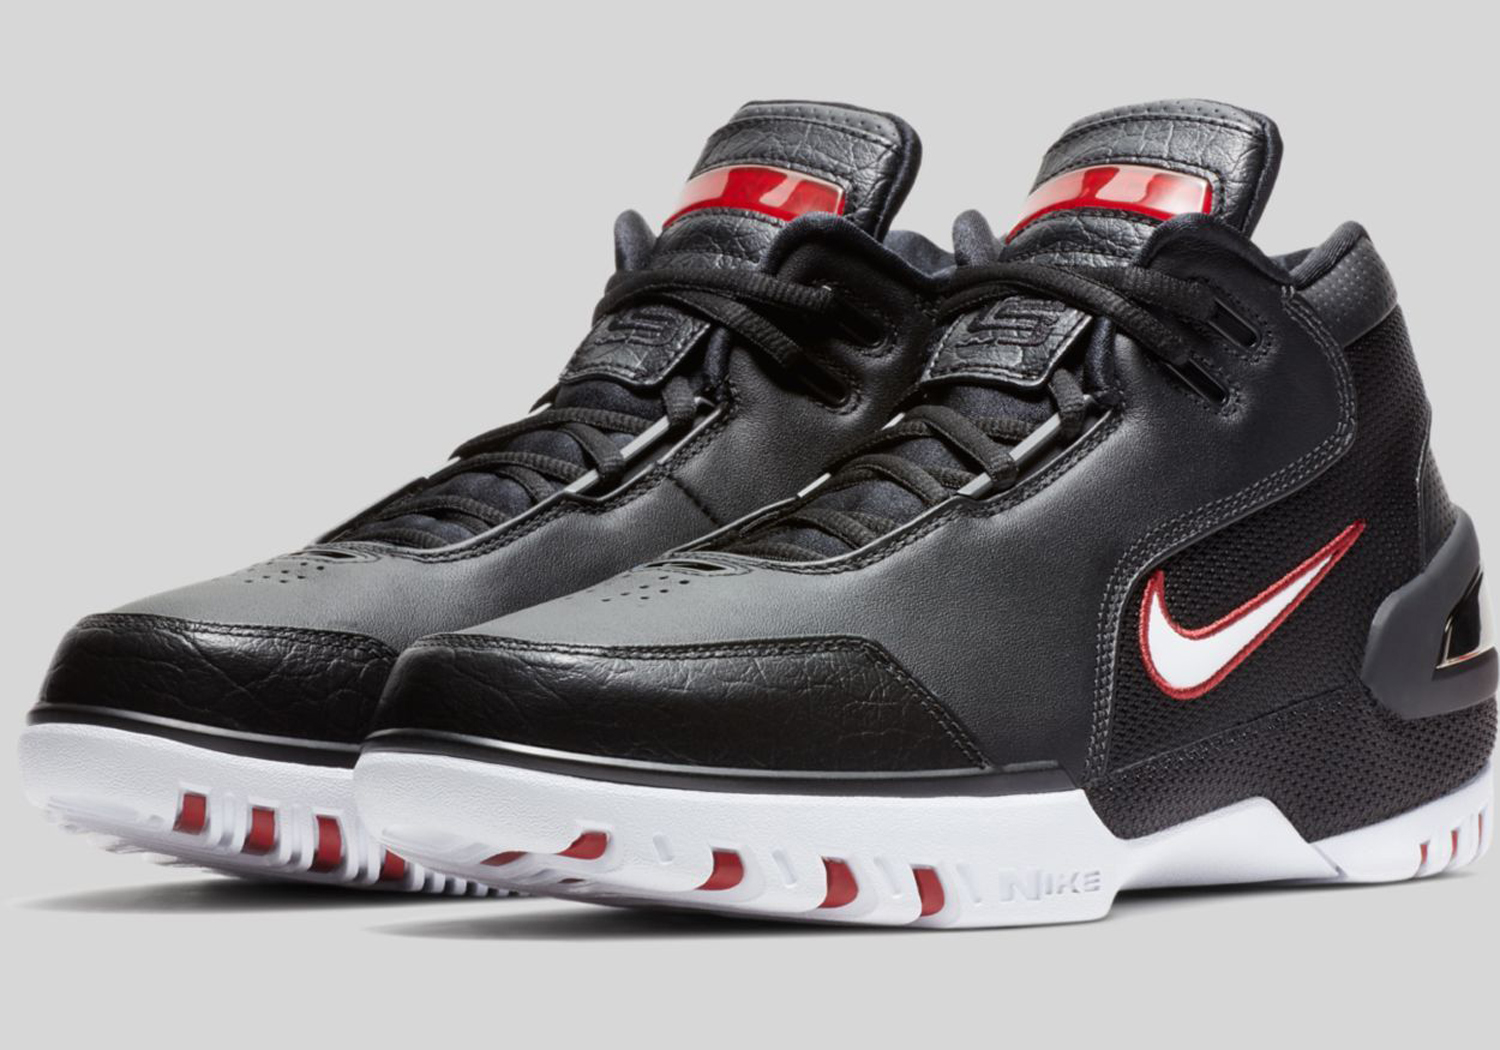 the best attitude af2c2 8dcf4 Nike Air Zoom Generation BlackCrimson is rumored to release in December